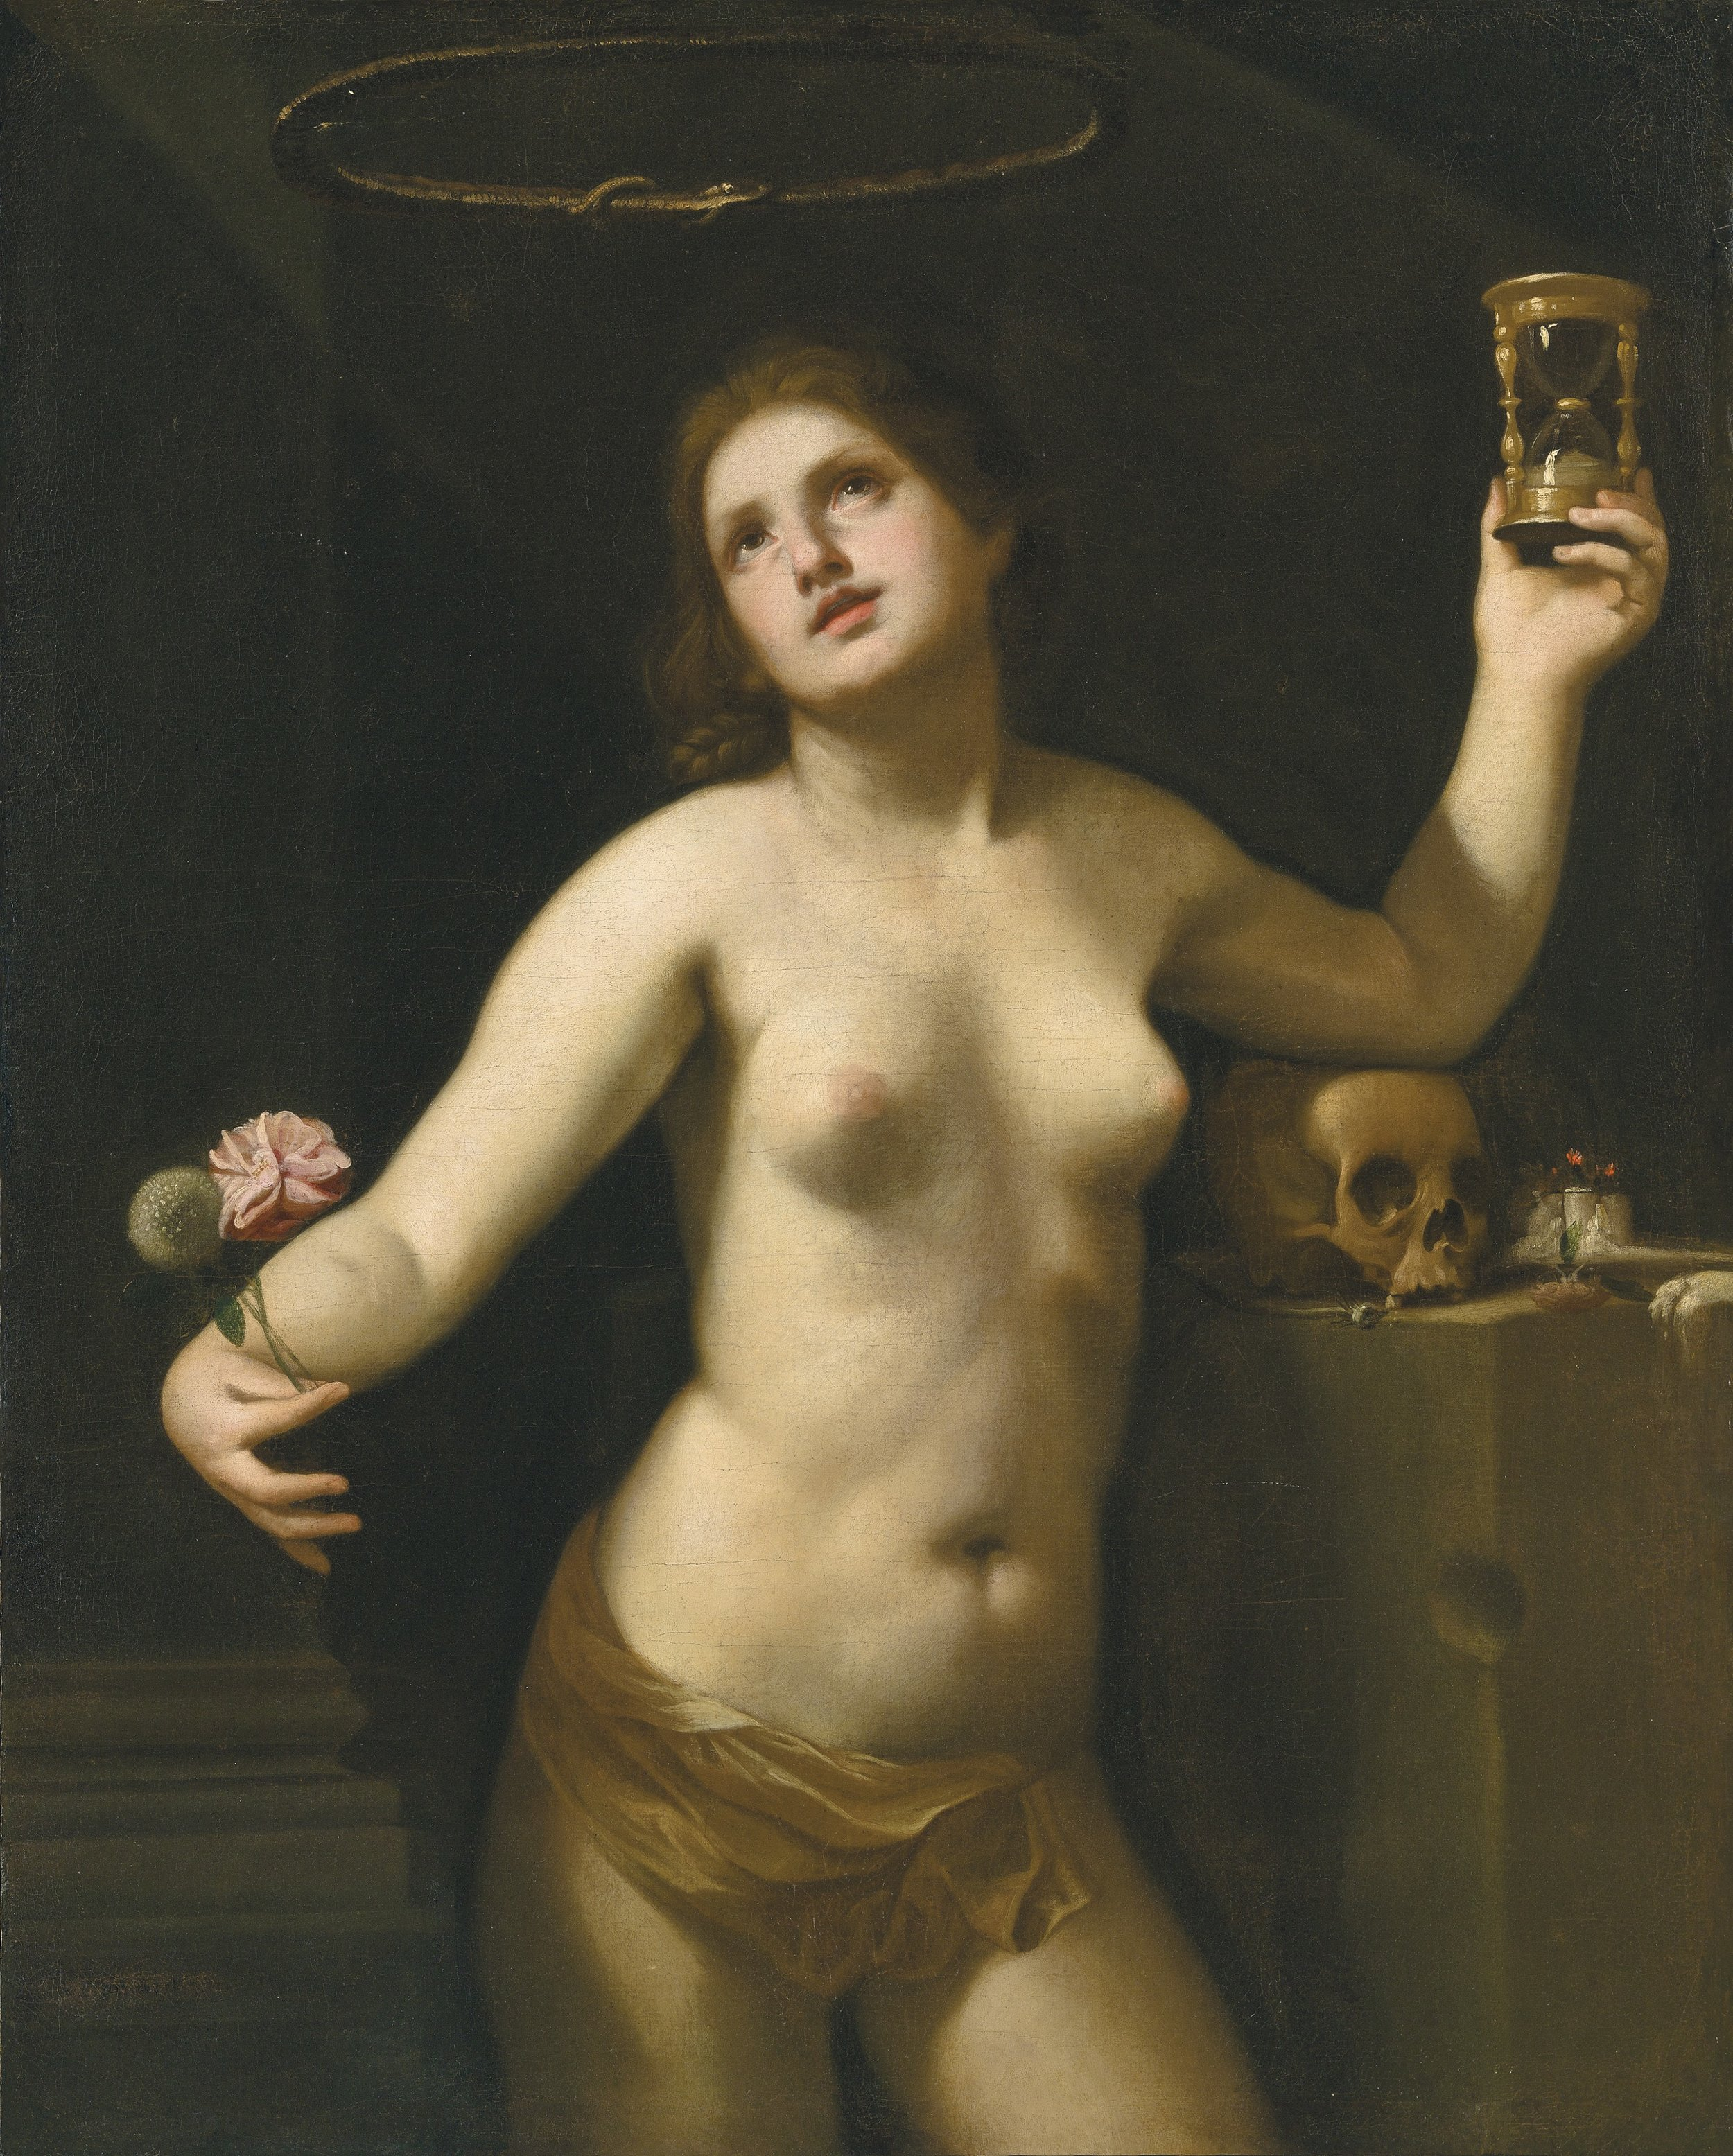 GUIDO CAGNACCI   ALLEGORY OF HUMAN LIFE